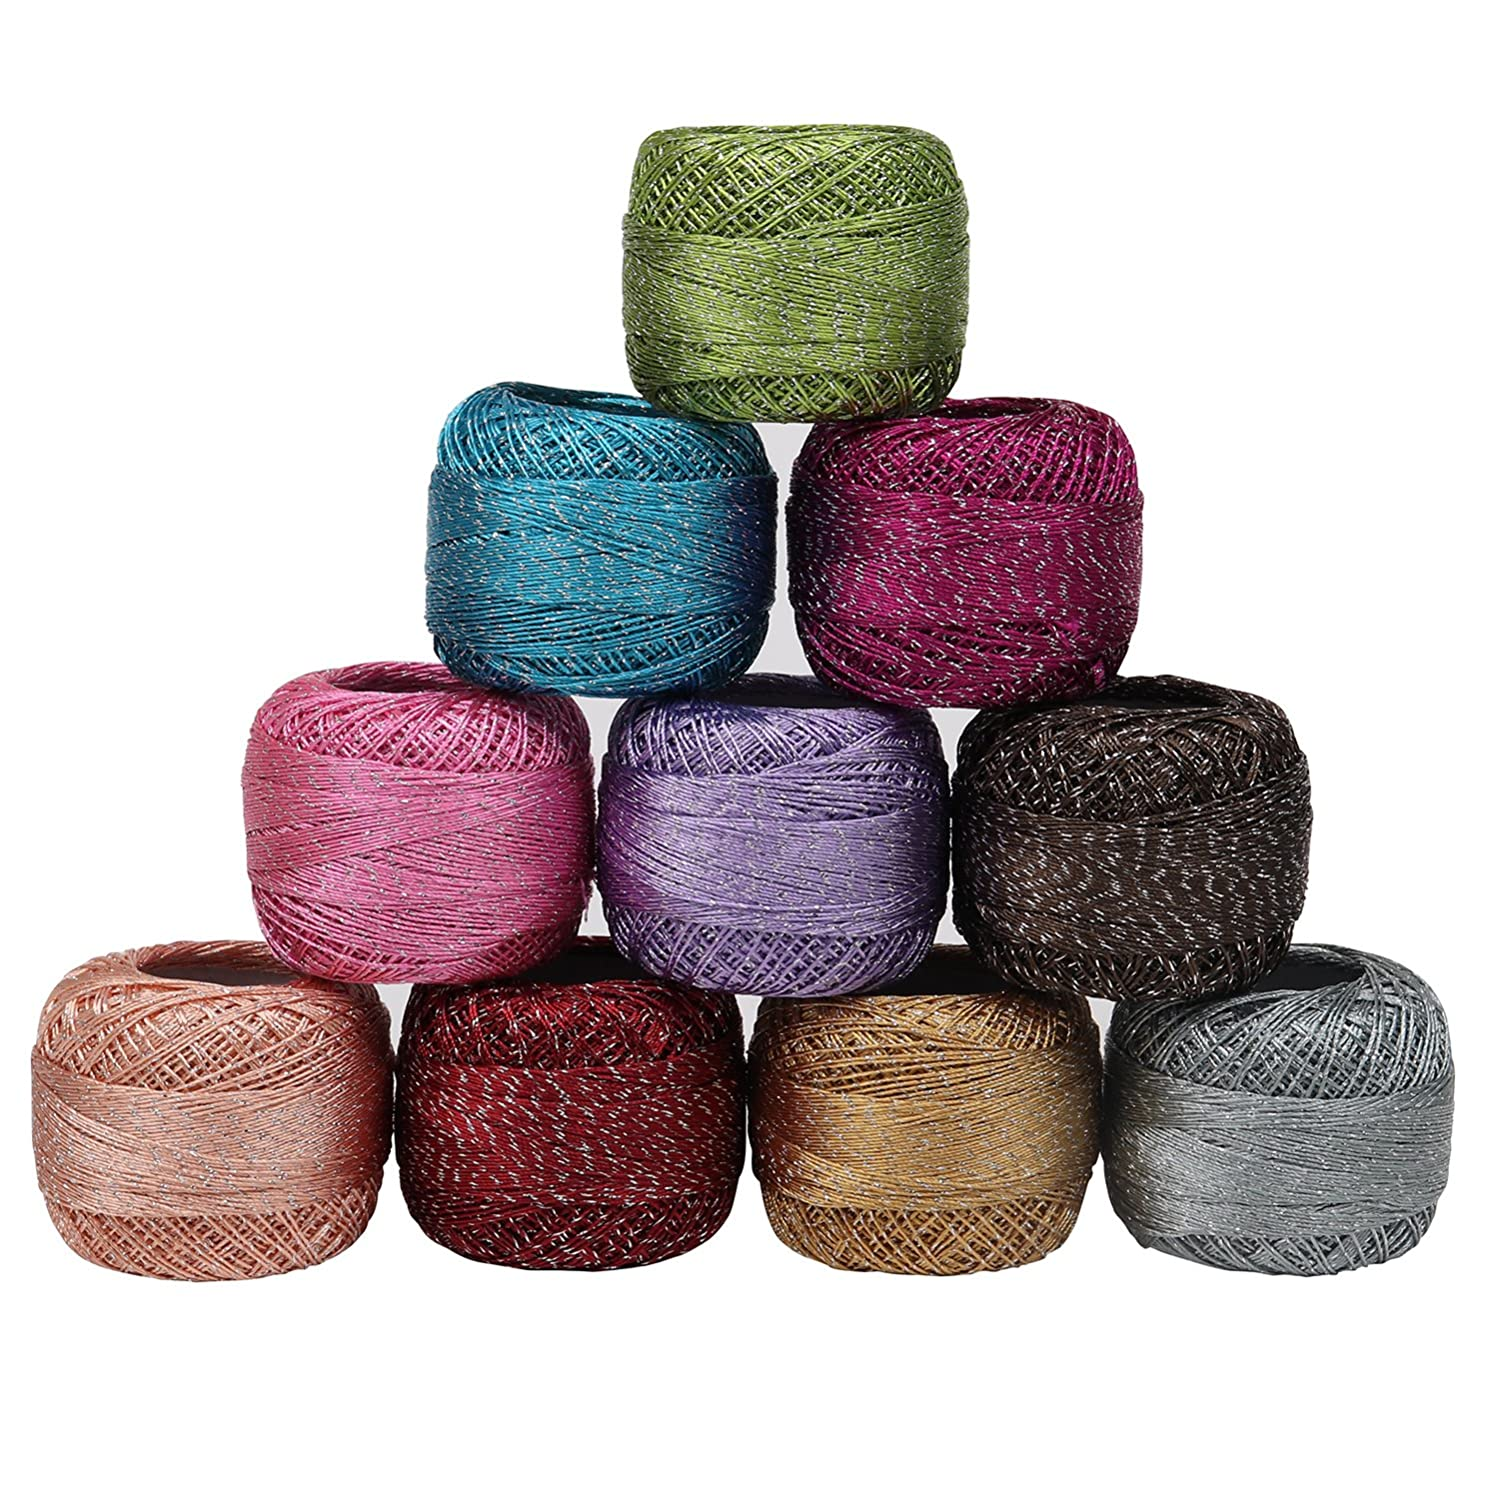 10 x Sparkly Colourful Glitter Cotton Crochet Thread Set by Kurtzy - 92.95 Yards Crafts Knitting Yarn Lace Flowers Skeins Balls - 929.50 Yards Total - Ideal for Beginners or Crochet Enthusiasts tzzzzbtebkefgt